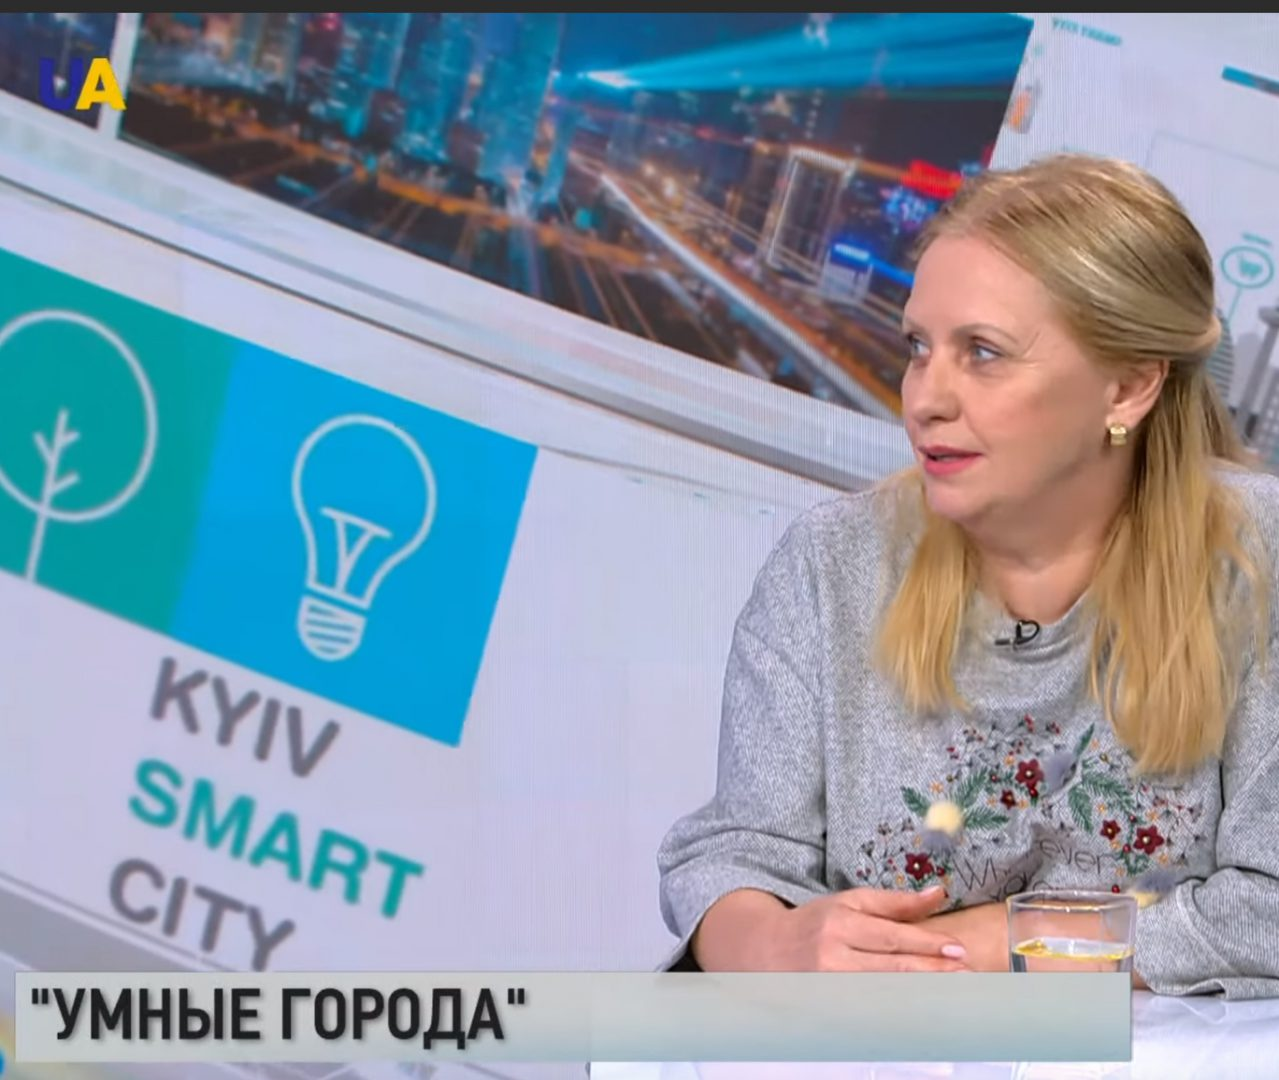 Interview with academy founder Iryna Zapatrina published on UATV Channel